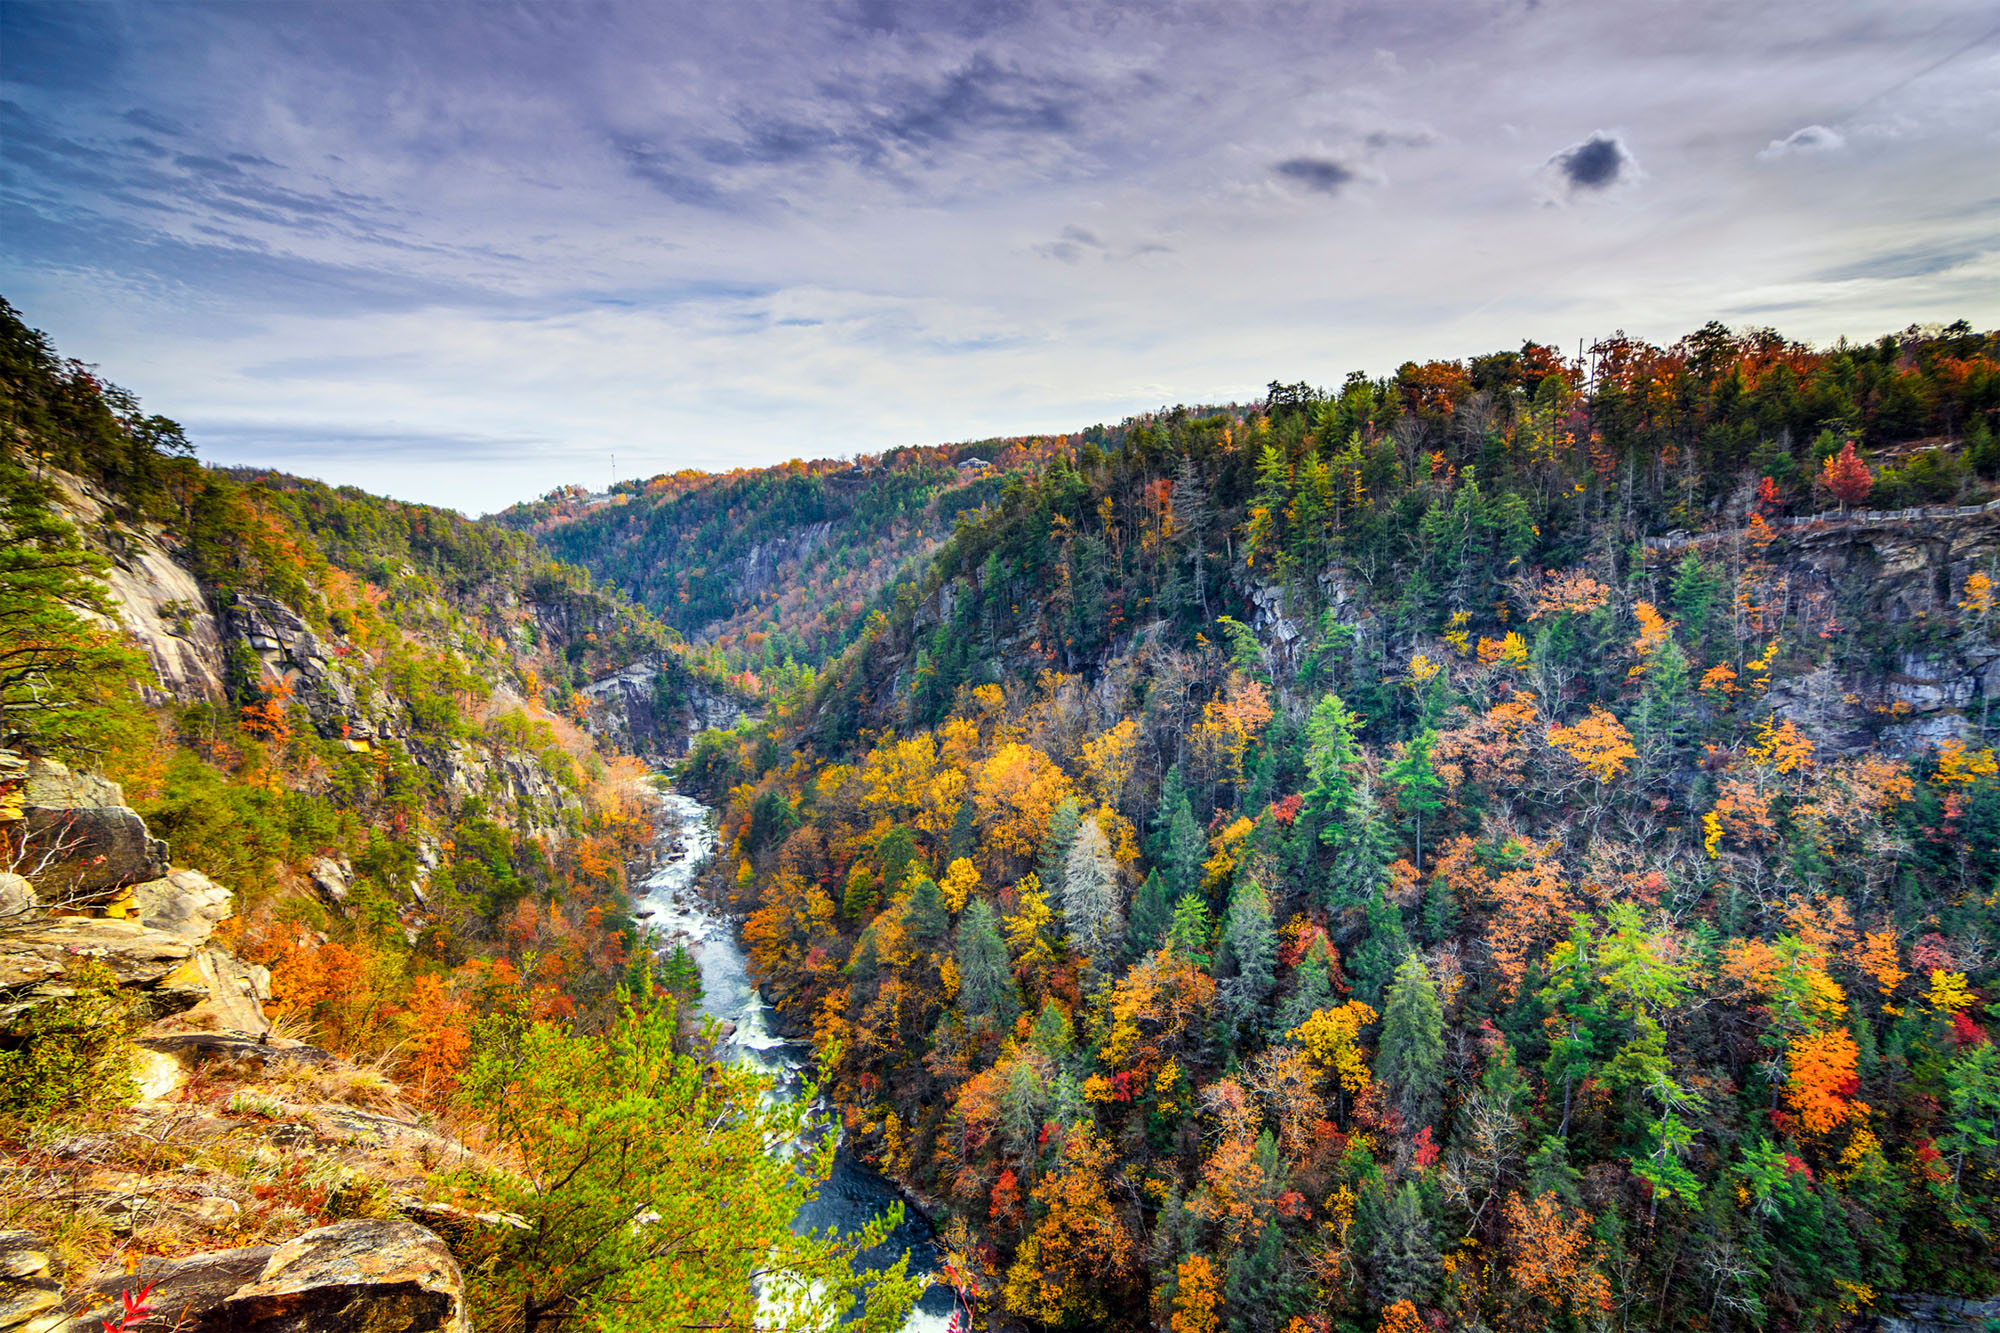 Tallulah Gorge State Park in the fall